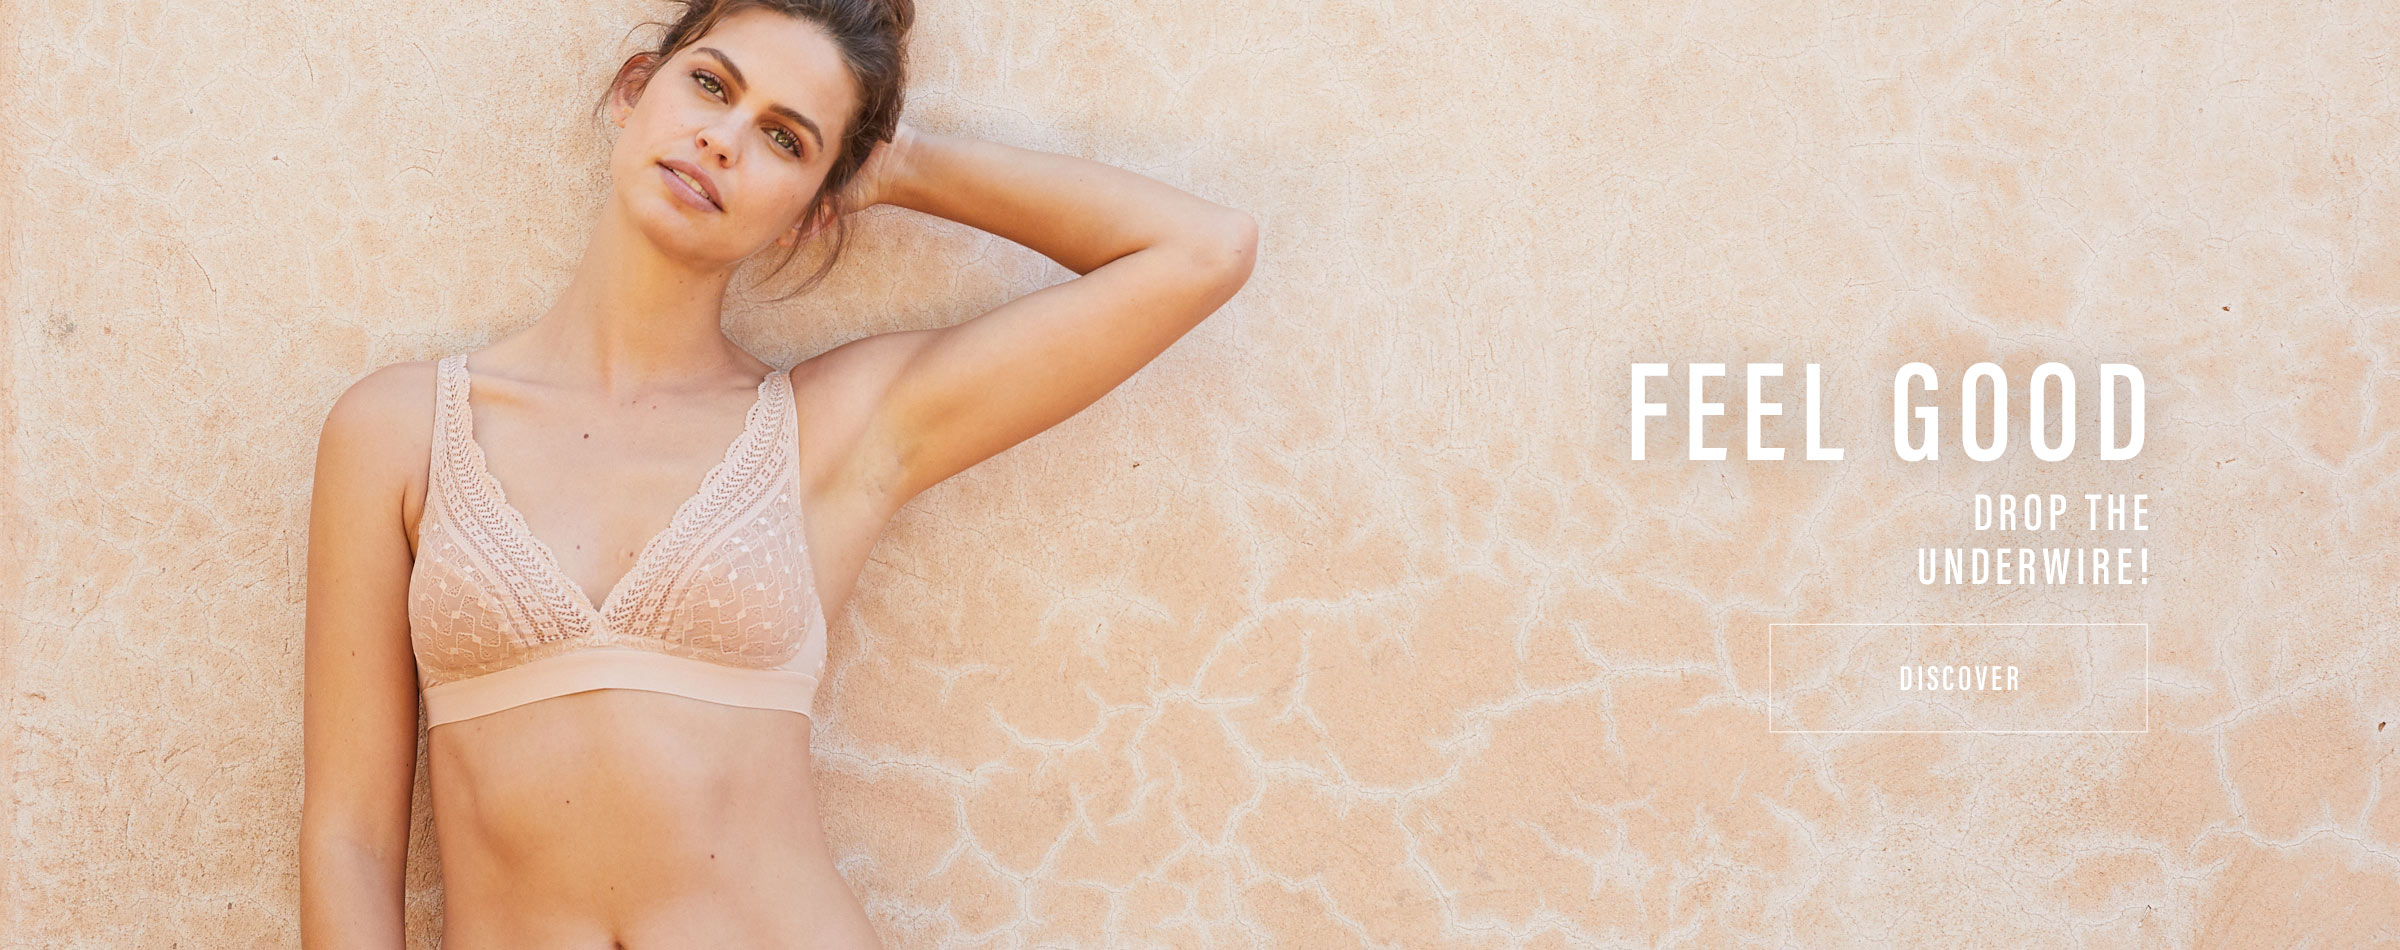 Feel good : drop the underwire !